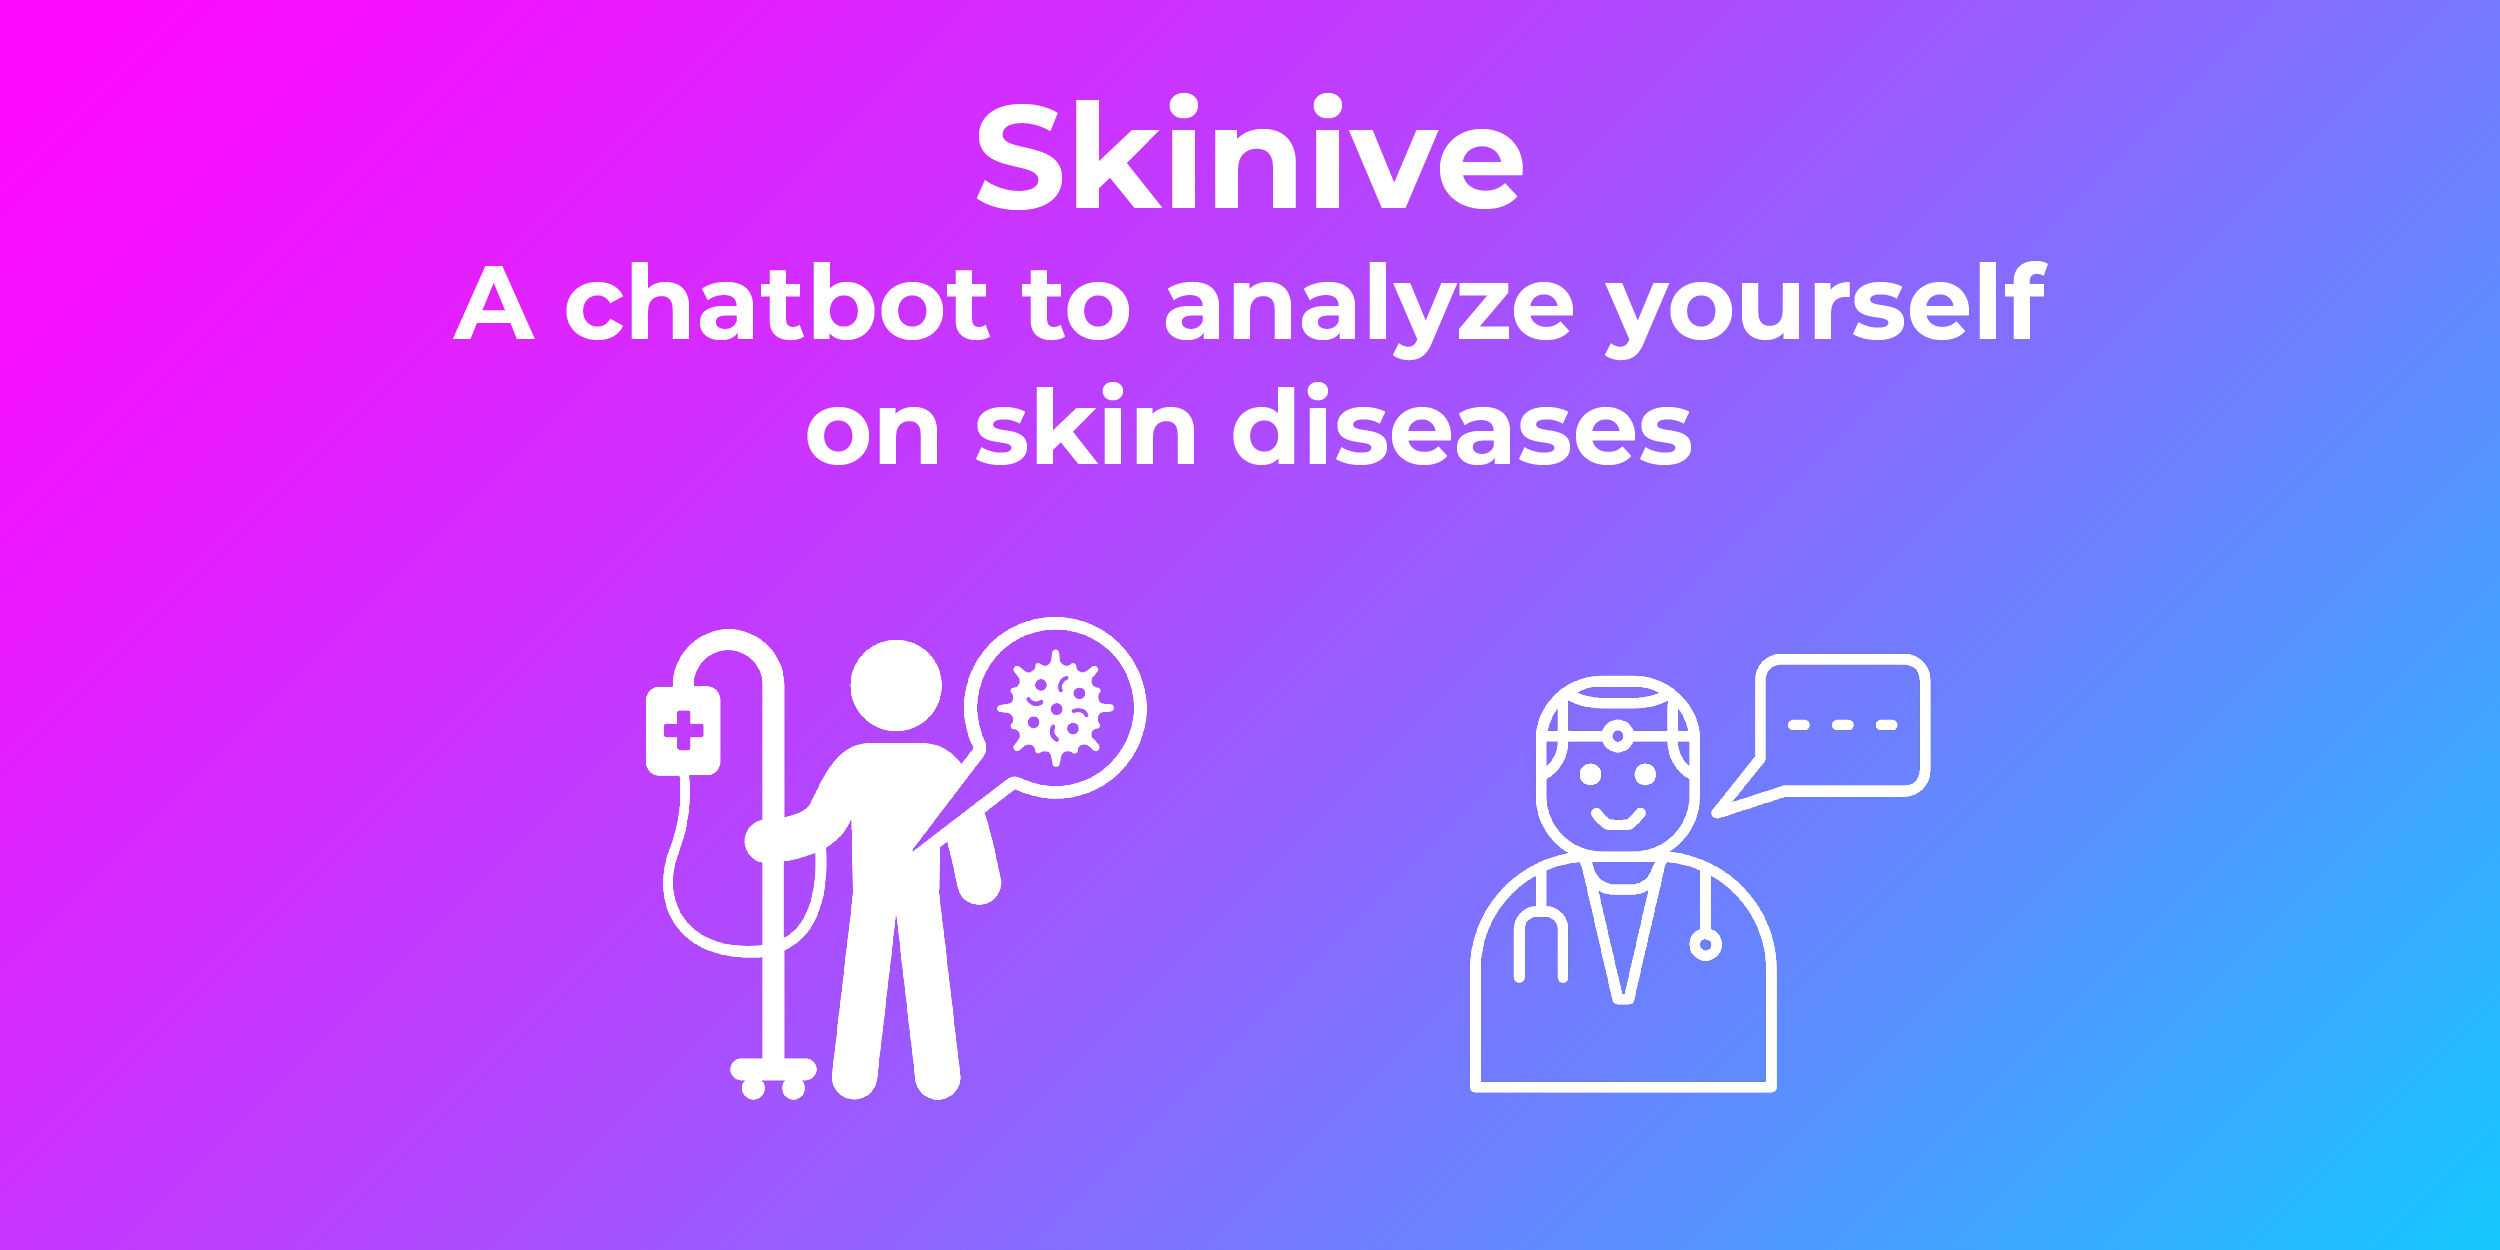 Skinive: a chatbot to analyze yourself on skin diseases